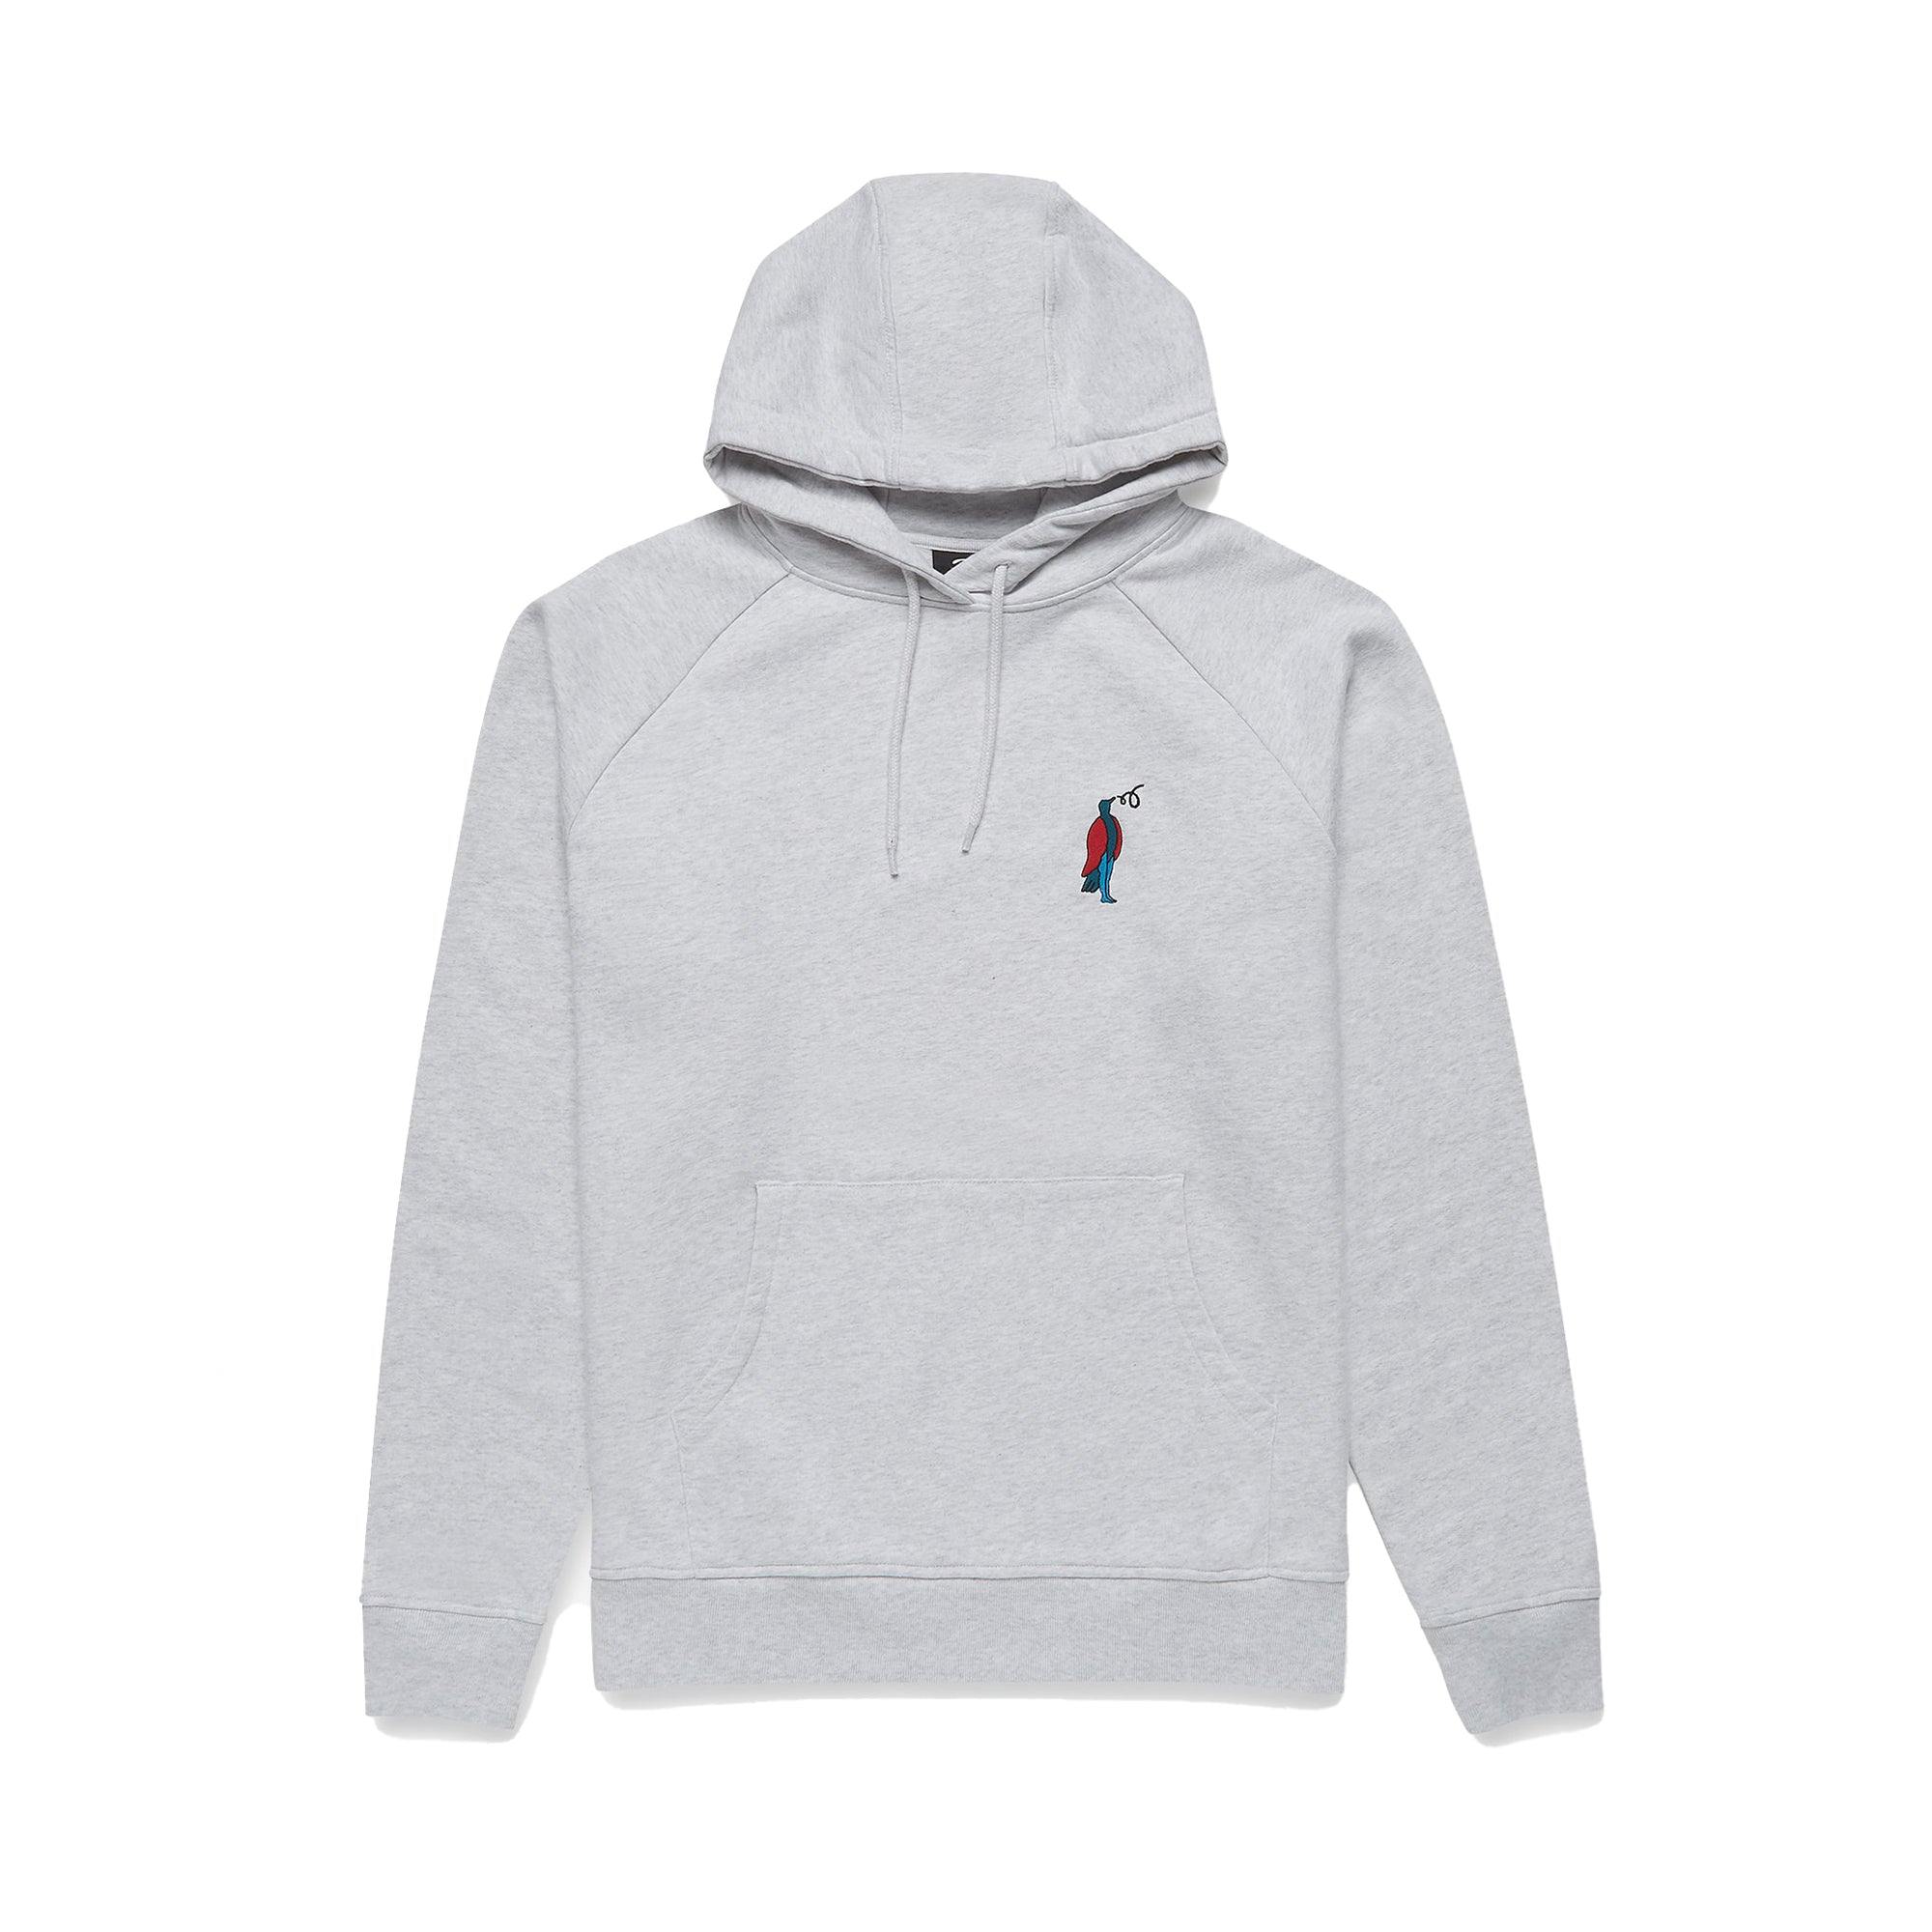 Parra Staring Hooded Sweatshirt: Ash Grey - The Union Project